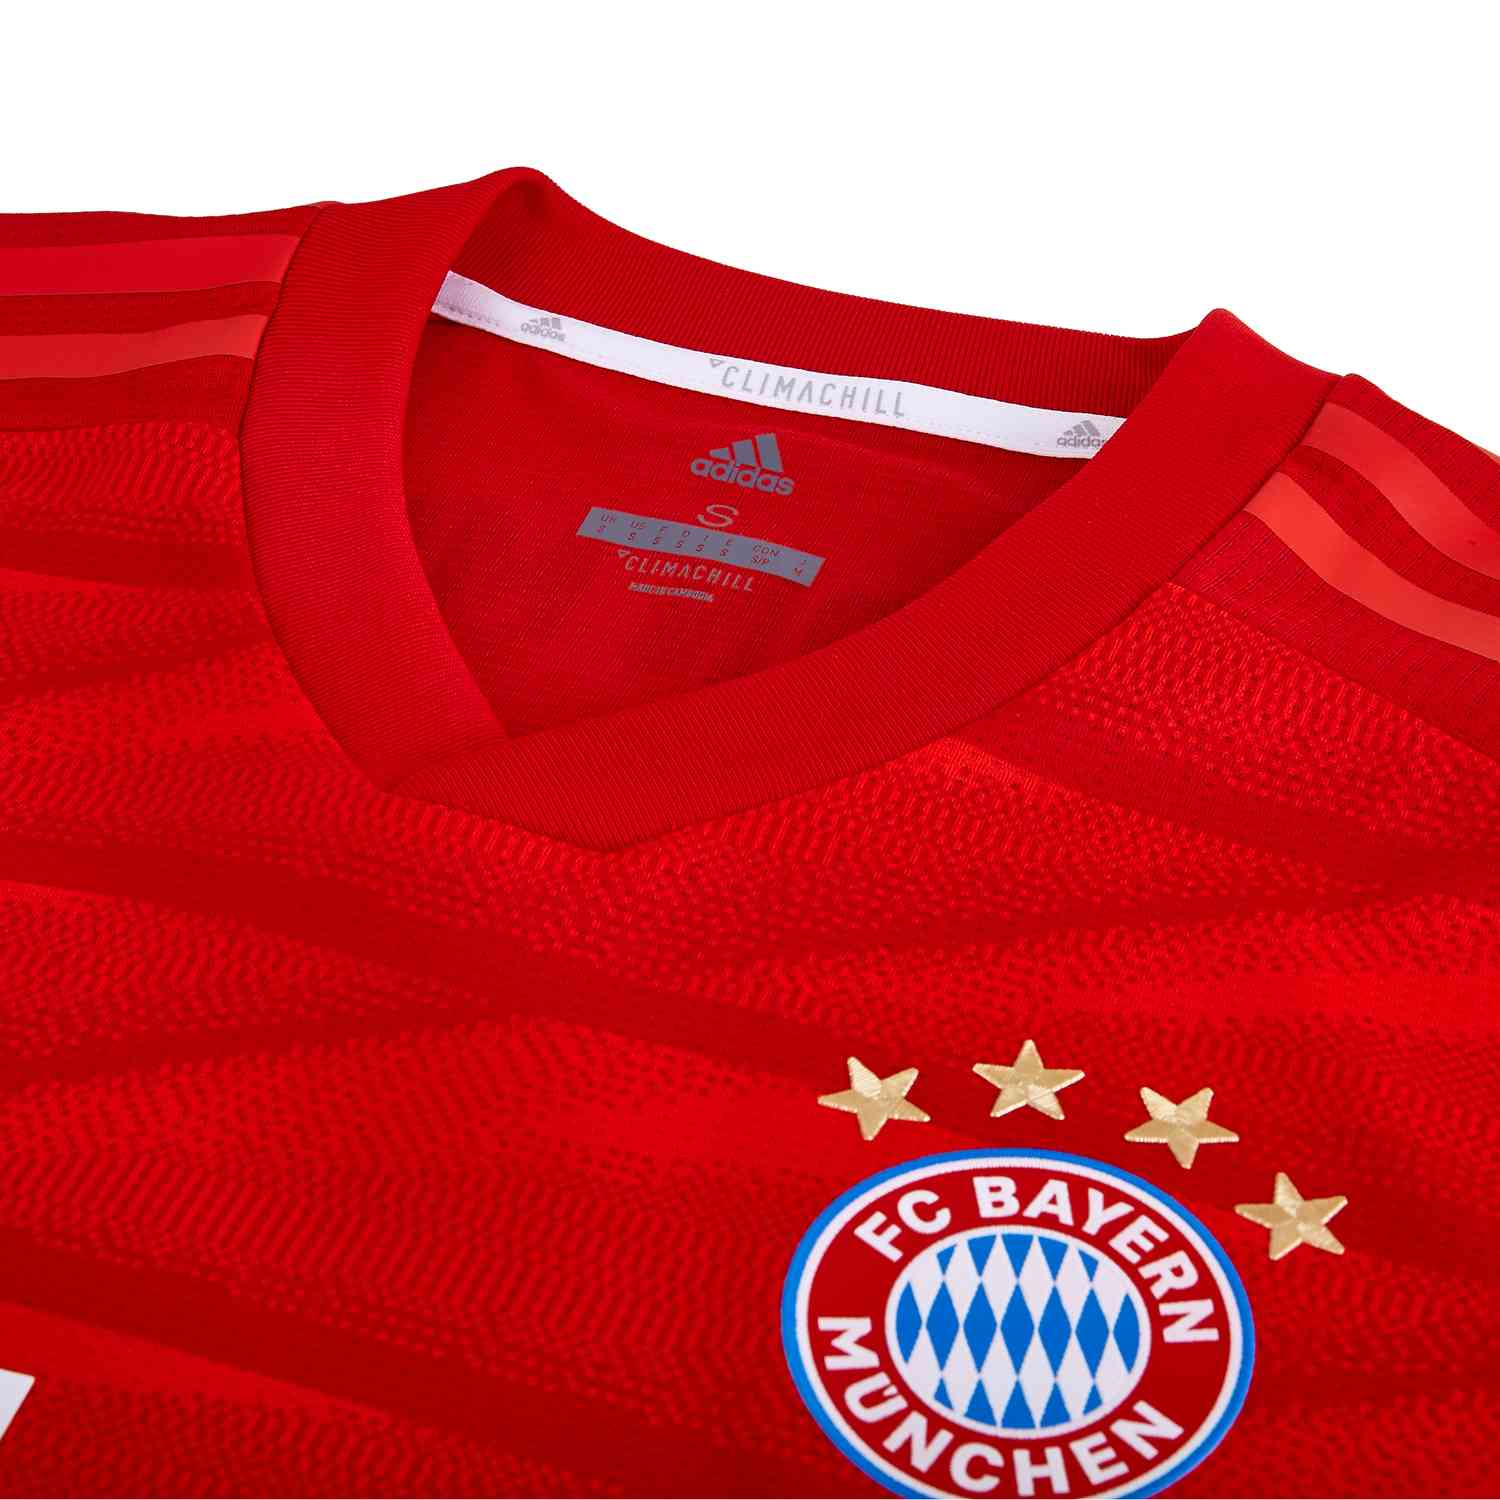 huge discount 7da71 5dcef 2019/20 adidas Bayern Munich Home Authentic Jersey - Soccer Master